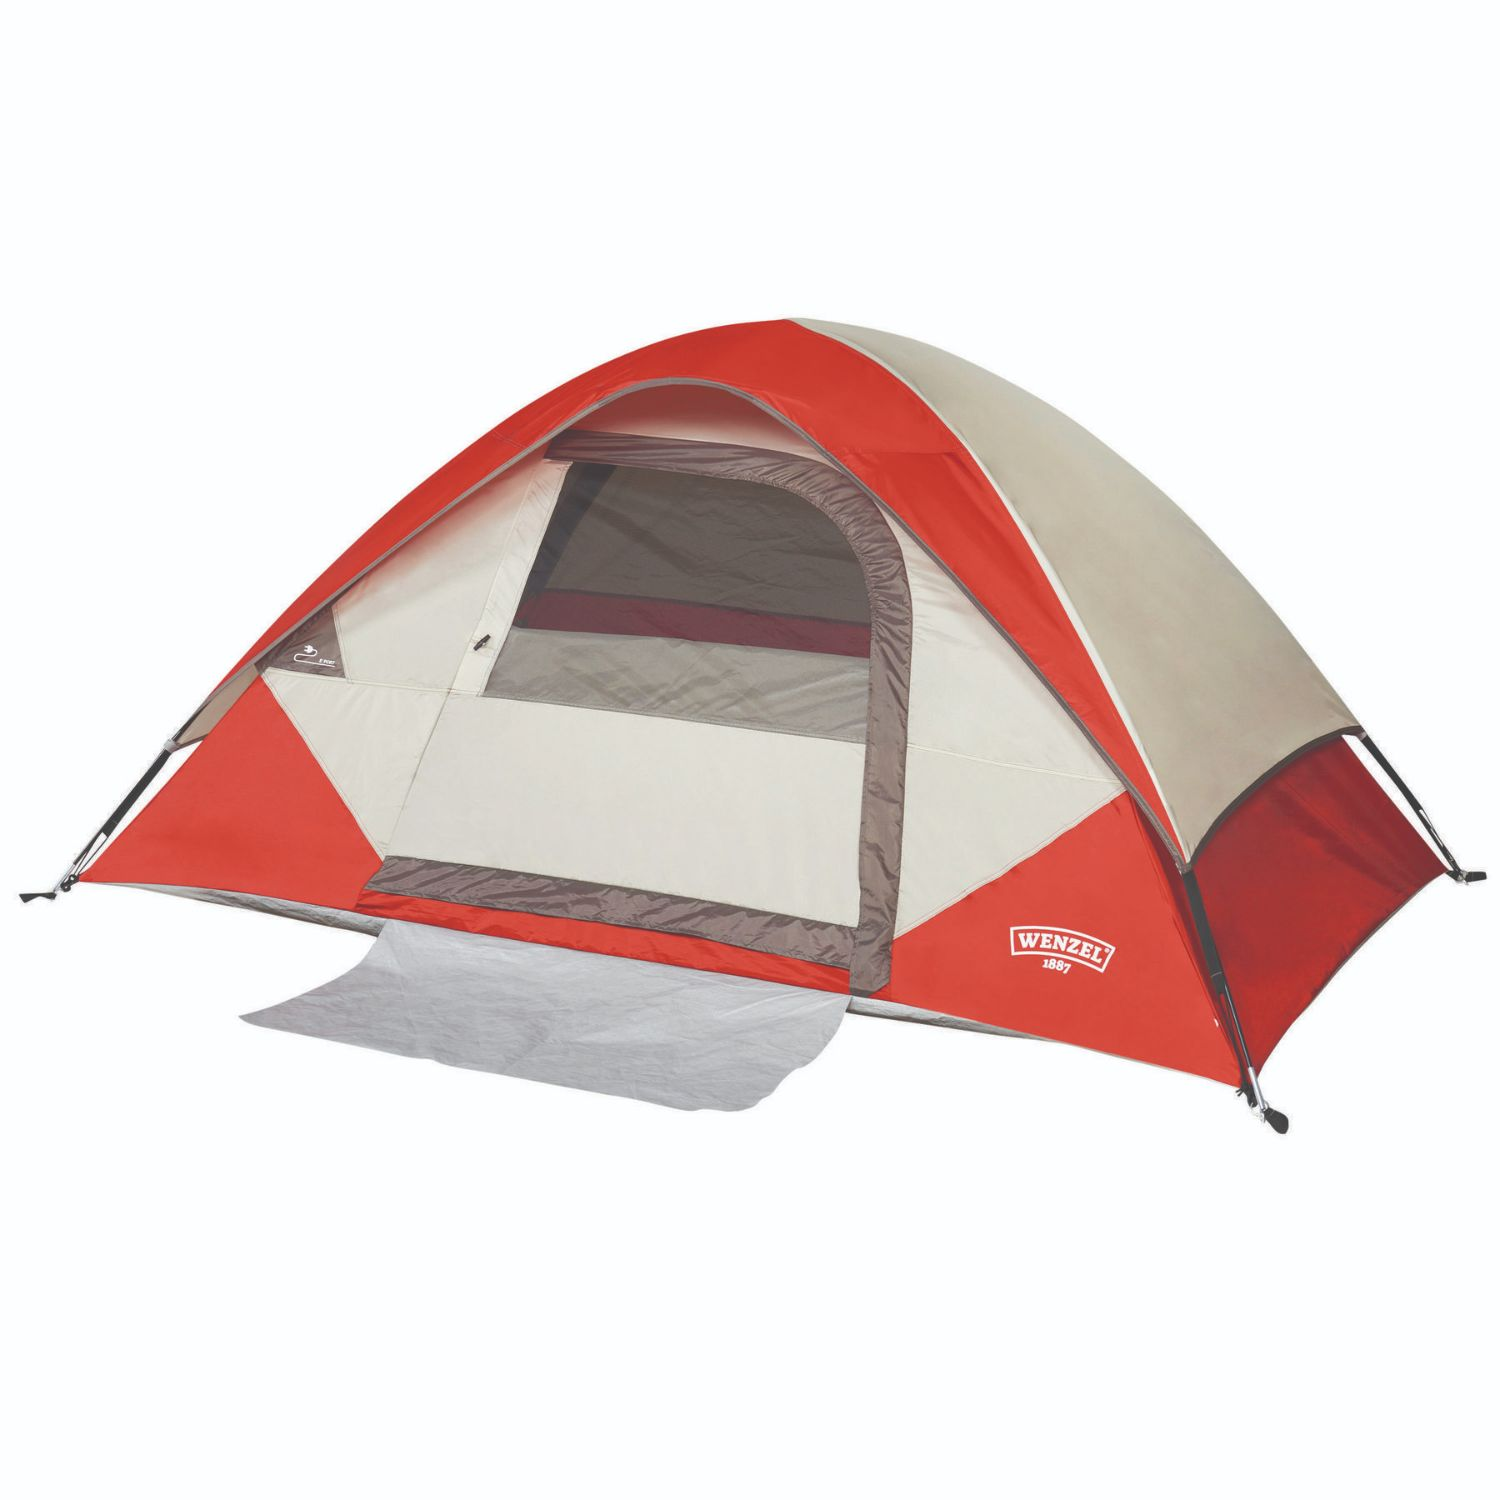 Wenzel Torrey 2 Person Dome Tent